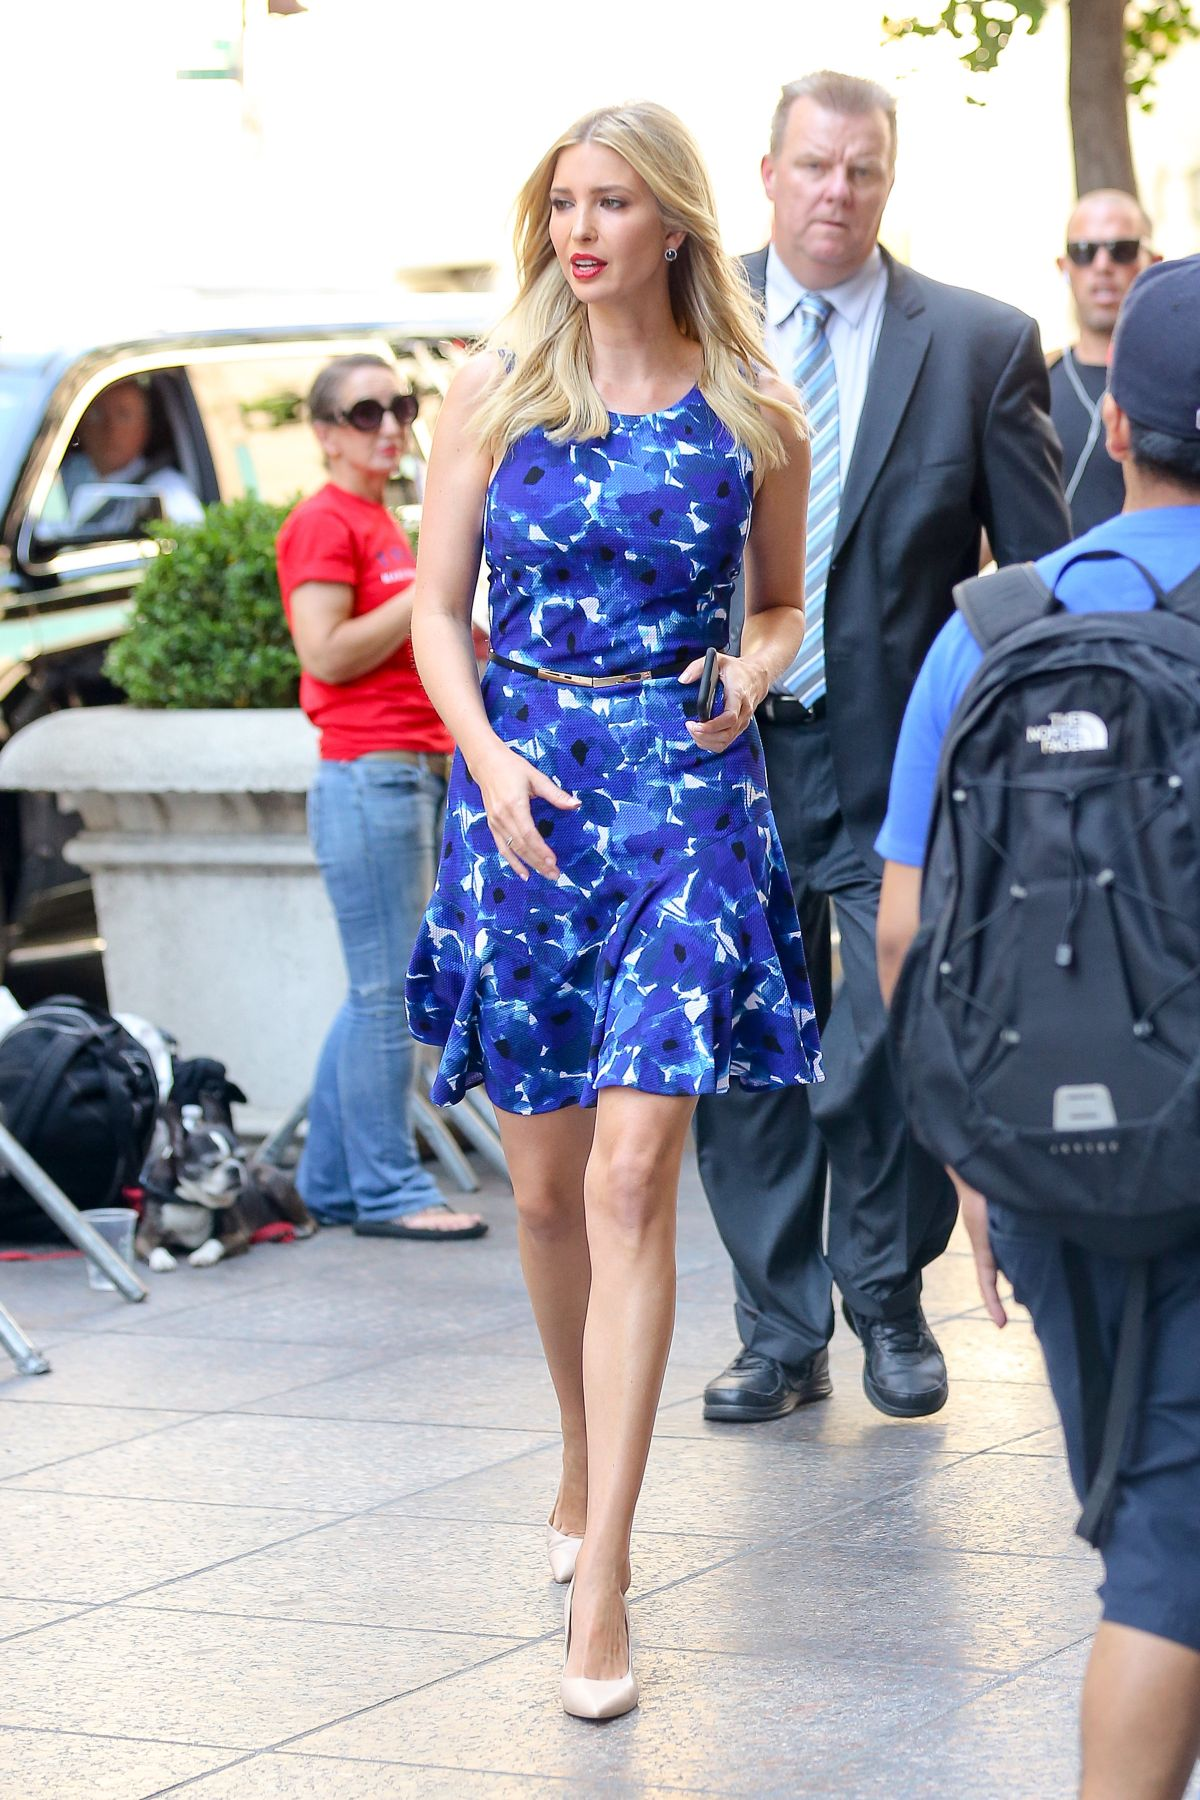 ivanka trump out and about in new york 06302016 hawtcelebs